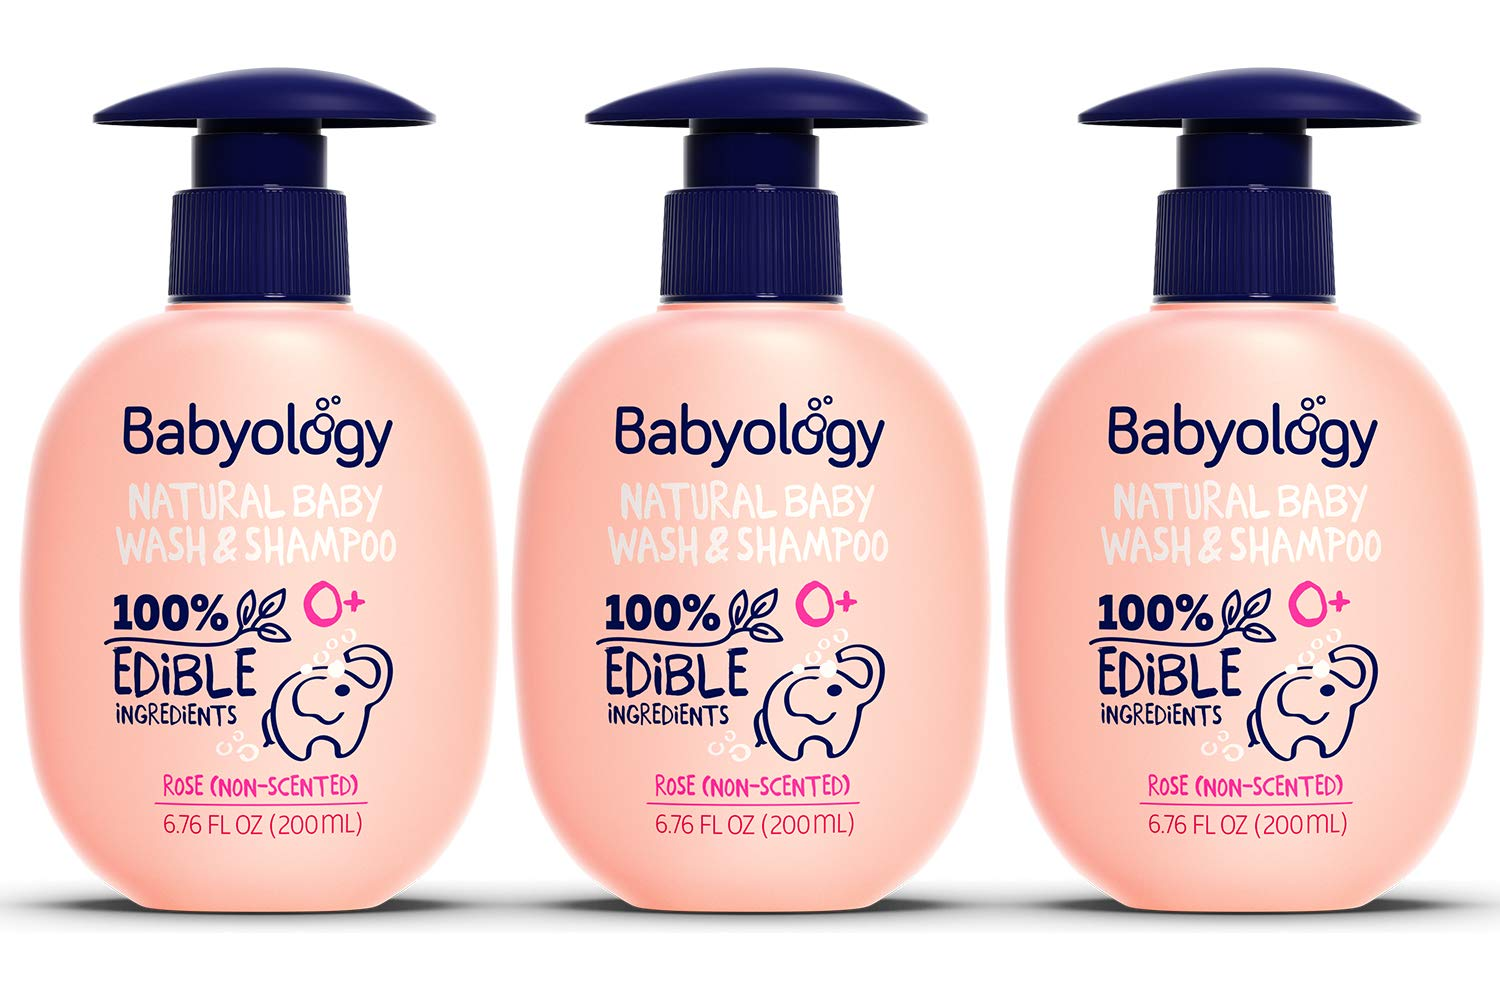 Babyology - 100% Edible Ingredients - Baby Wash & Shampoo - Non-scented (Organic Rose Water) - Clinically Tested - Tear-Free - 6,67 FL. OZ - Perfect Baby Shower Gift (3 Pack) by Babyology